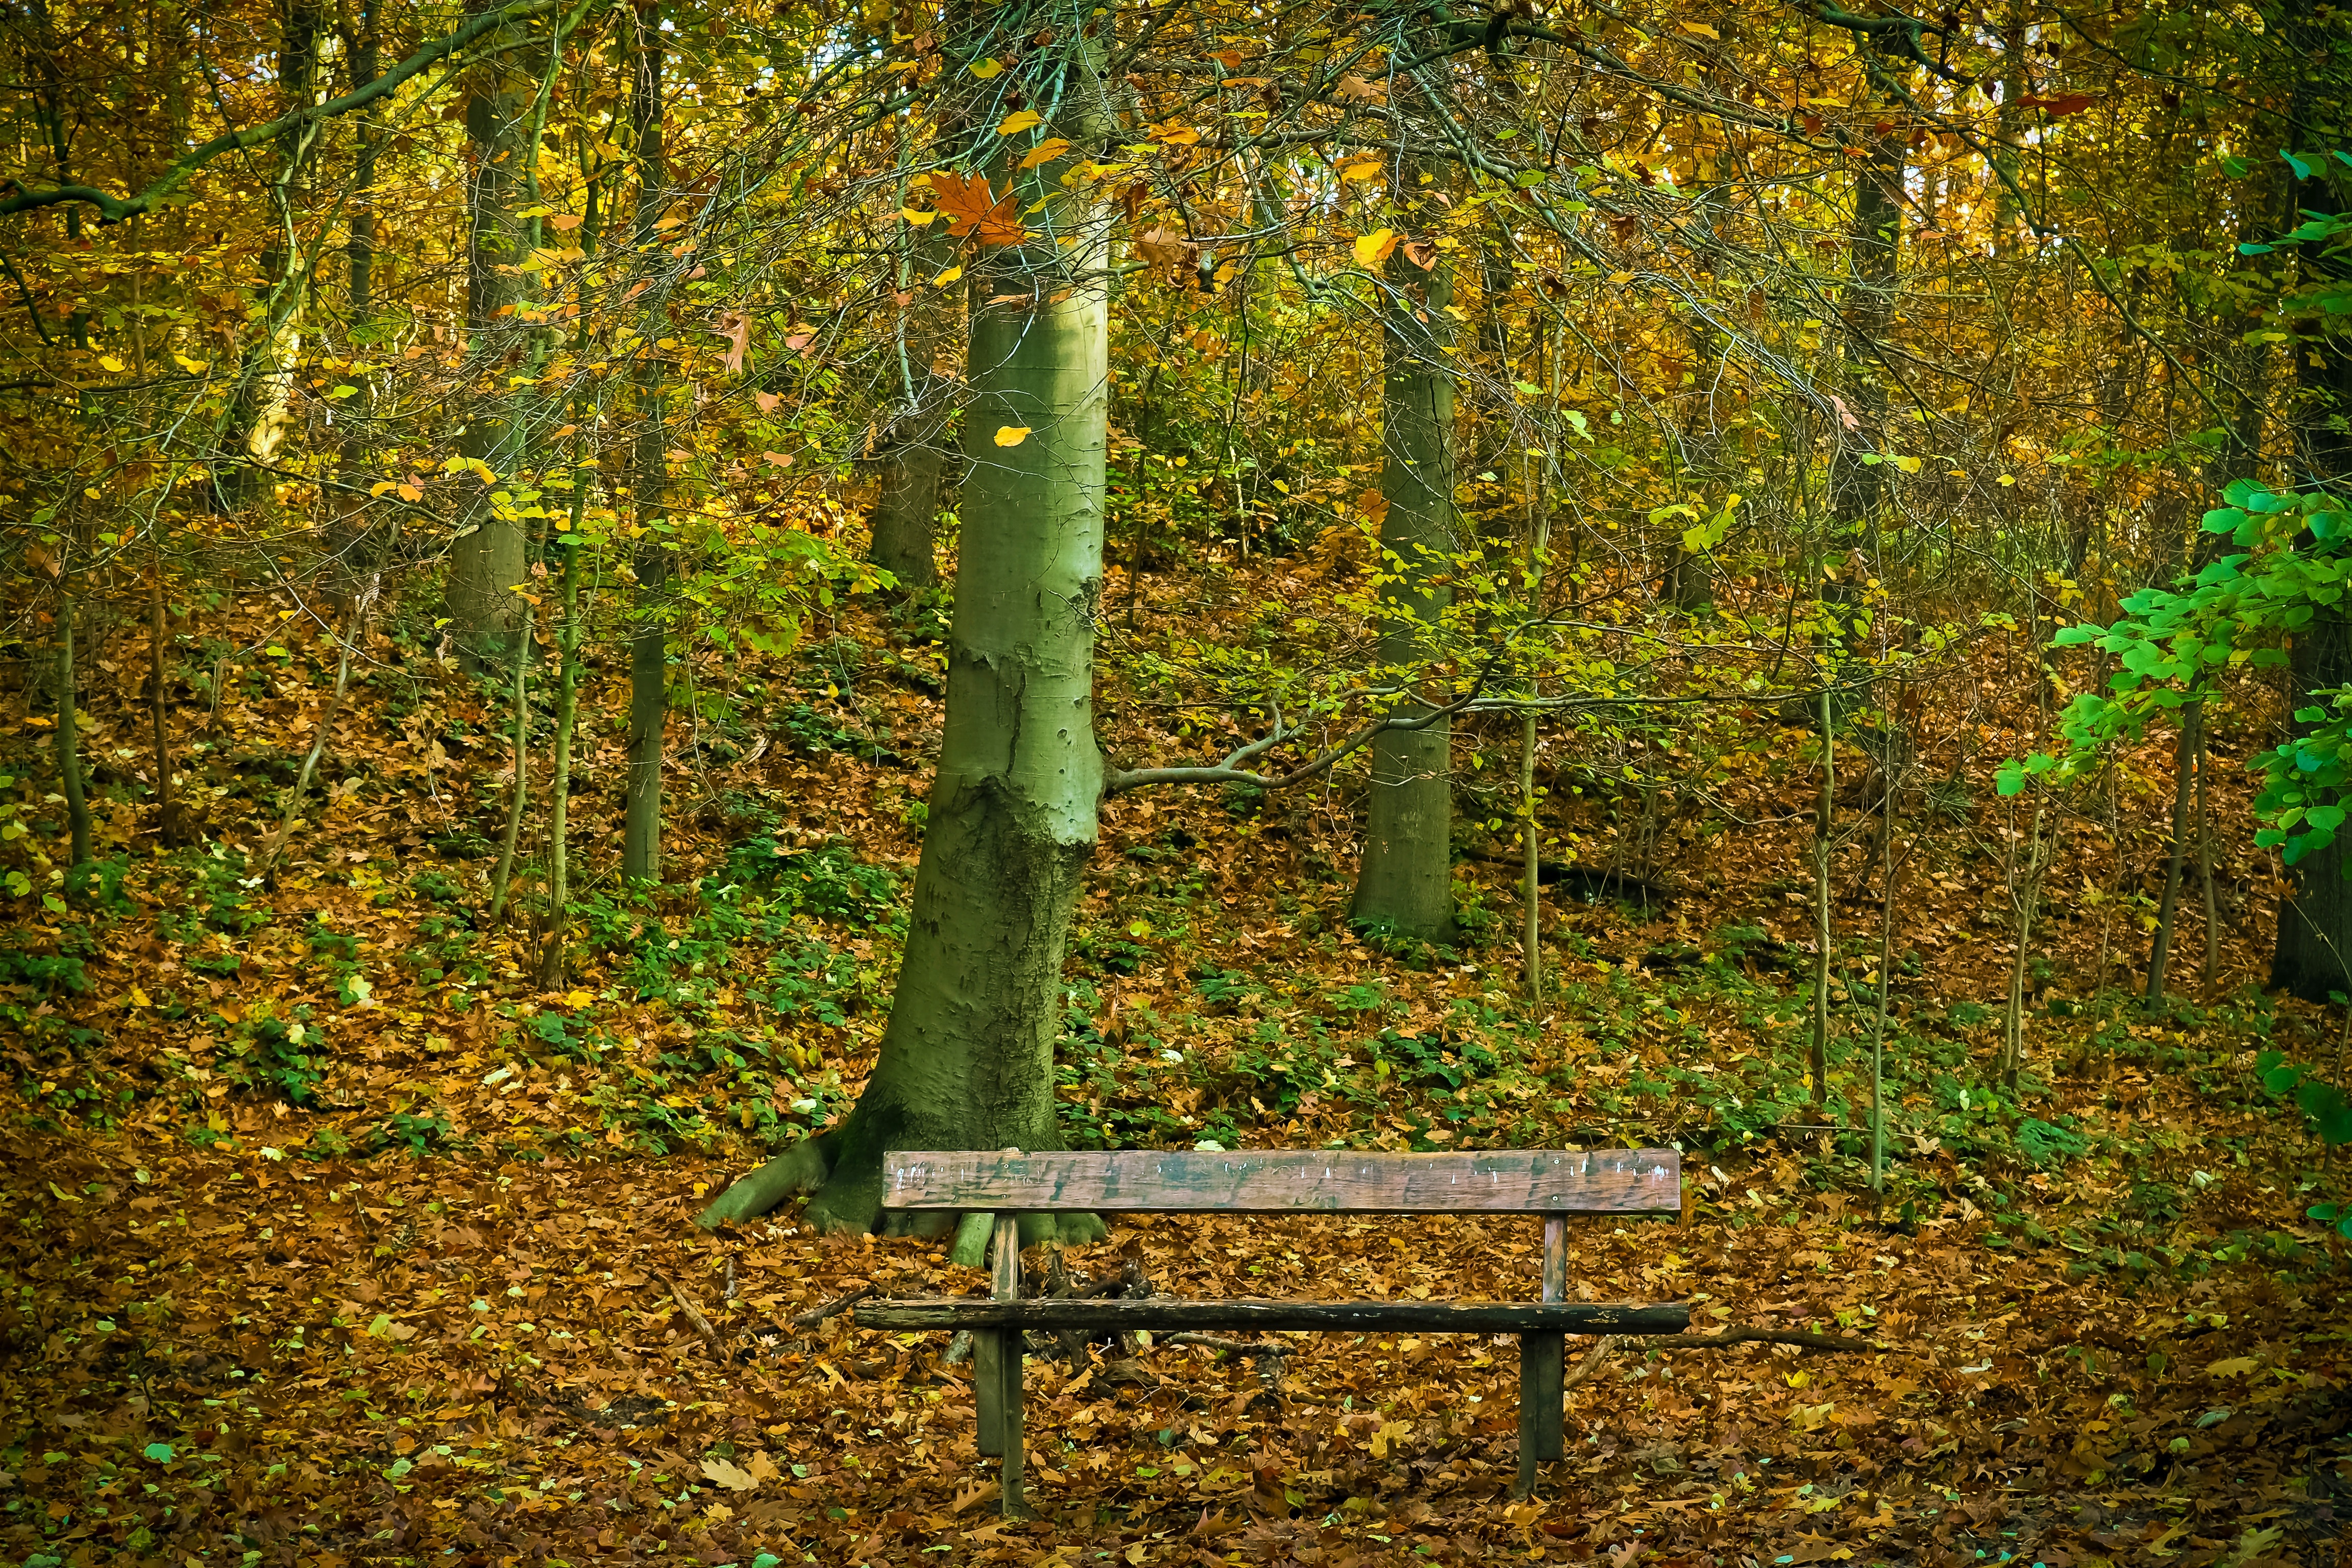 Free photo: Bench in Park during Autumn - Relax, Rest, Scene - Free ...